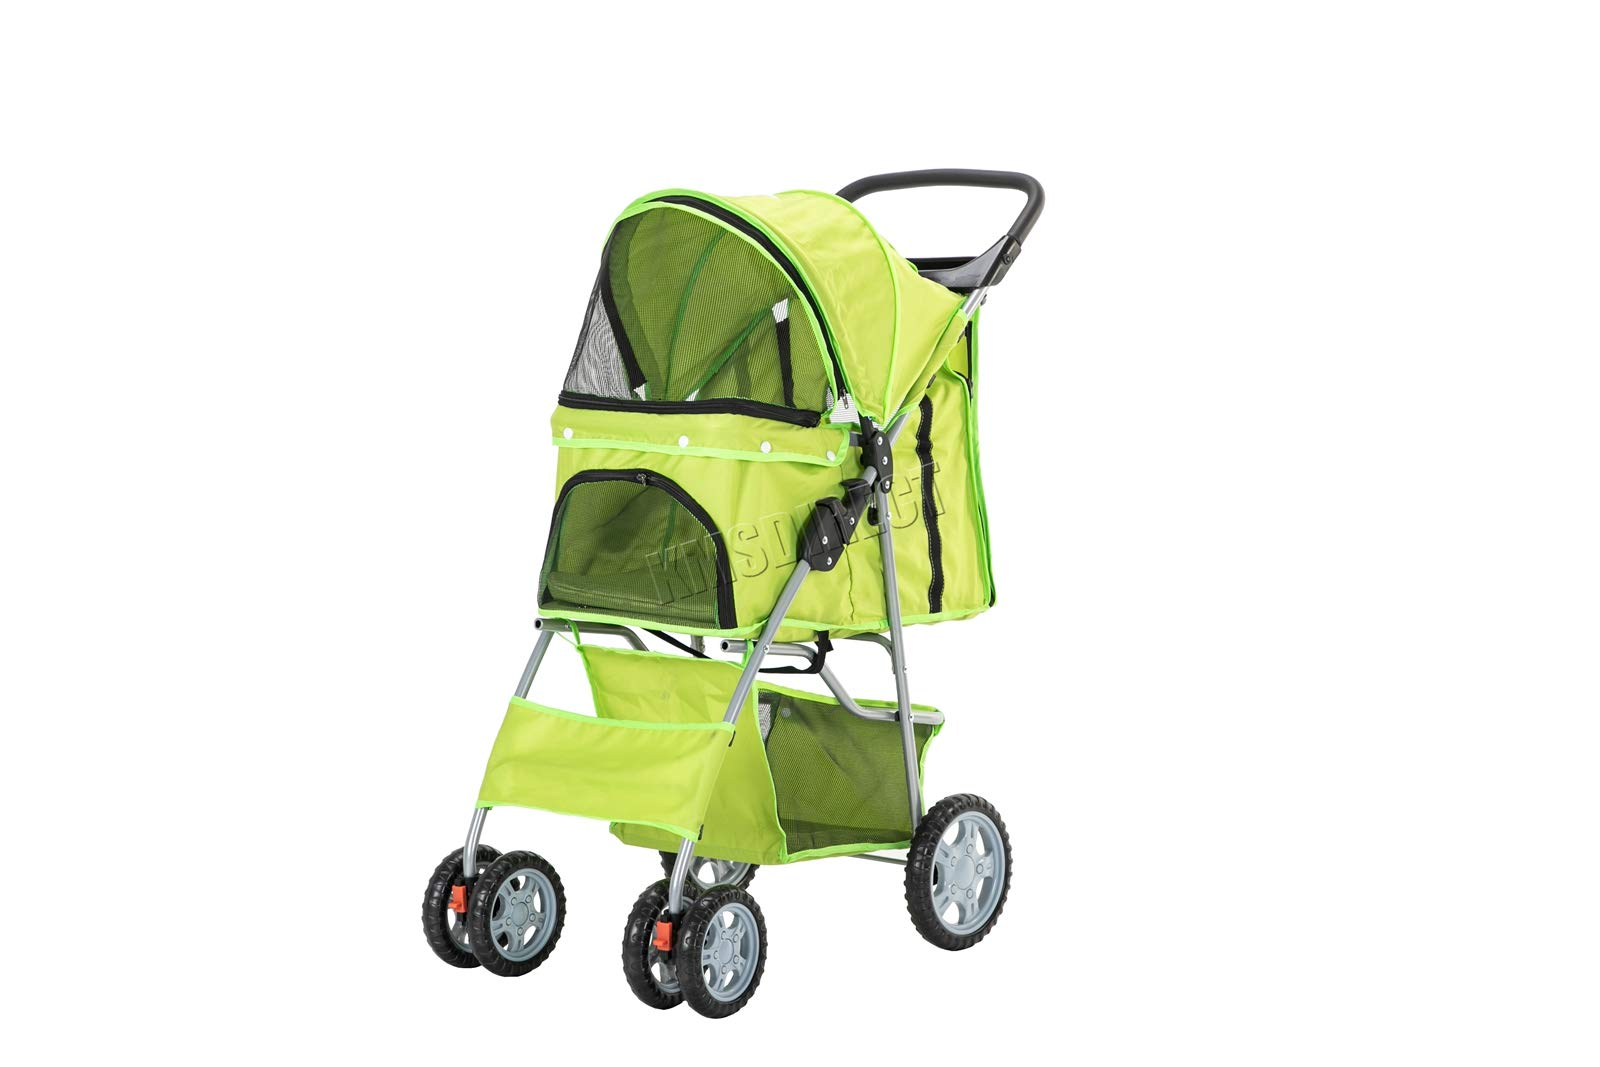 FoxHunter New Dog Pram | Pet Dog Cat Animal Stroller | Dog Buggy For Traveling | Travel Vet Stroller Disabled Dog Pushchair | 2 Front Swivel Wheels & Rear Brake Green | UK Seller